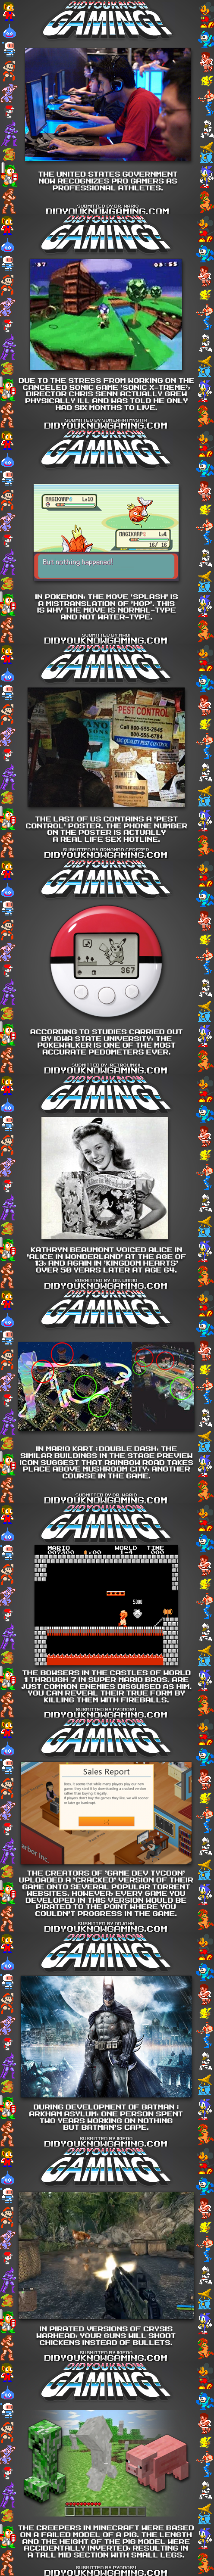 Did You Know Gaming Part 5. All credit goes to Didyouknowgaming.com and if you want more, I highly suggest you go there. If you're too lazy to thumb through the